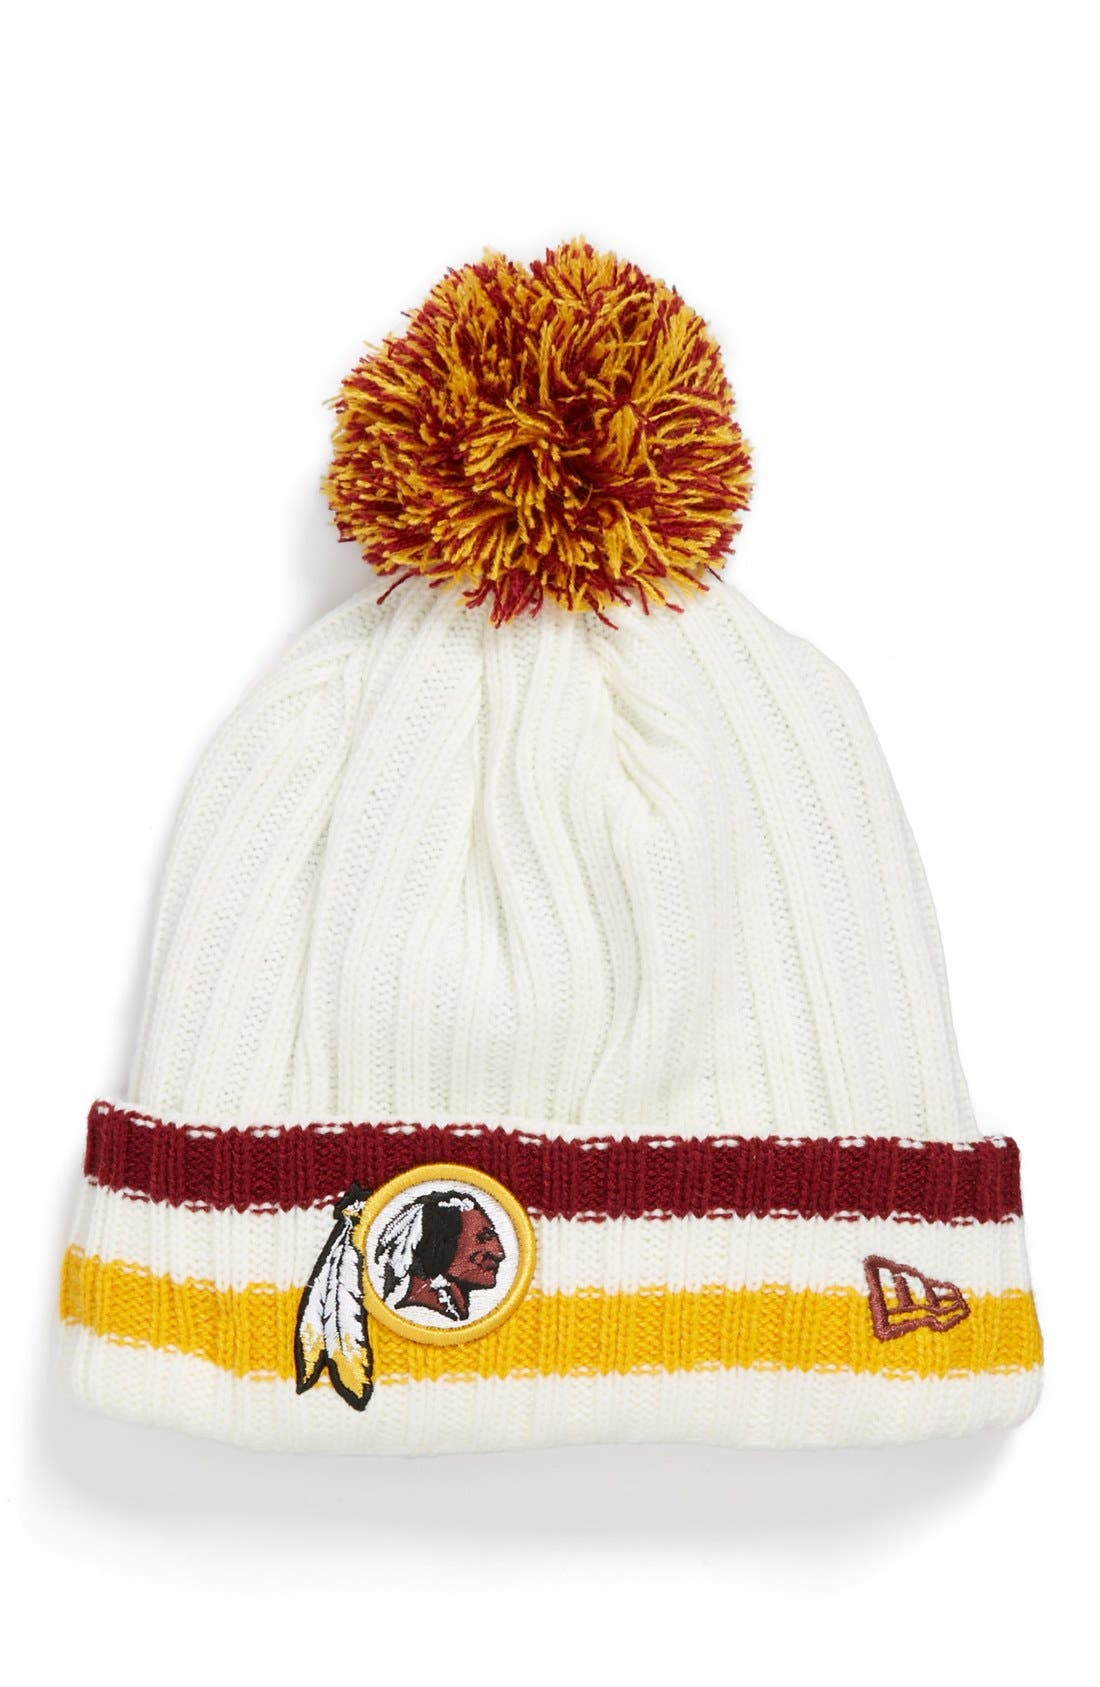 Alternate Image 1 Selected - New Era Cap 'Yesteryear - Washington Redskins' Knit Cap